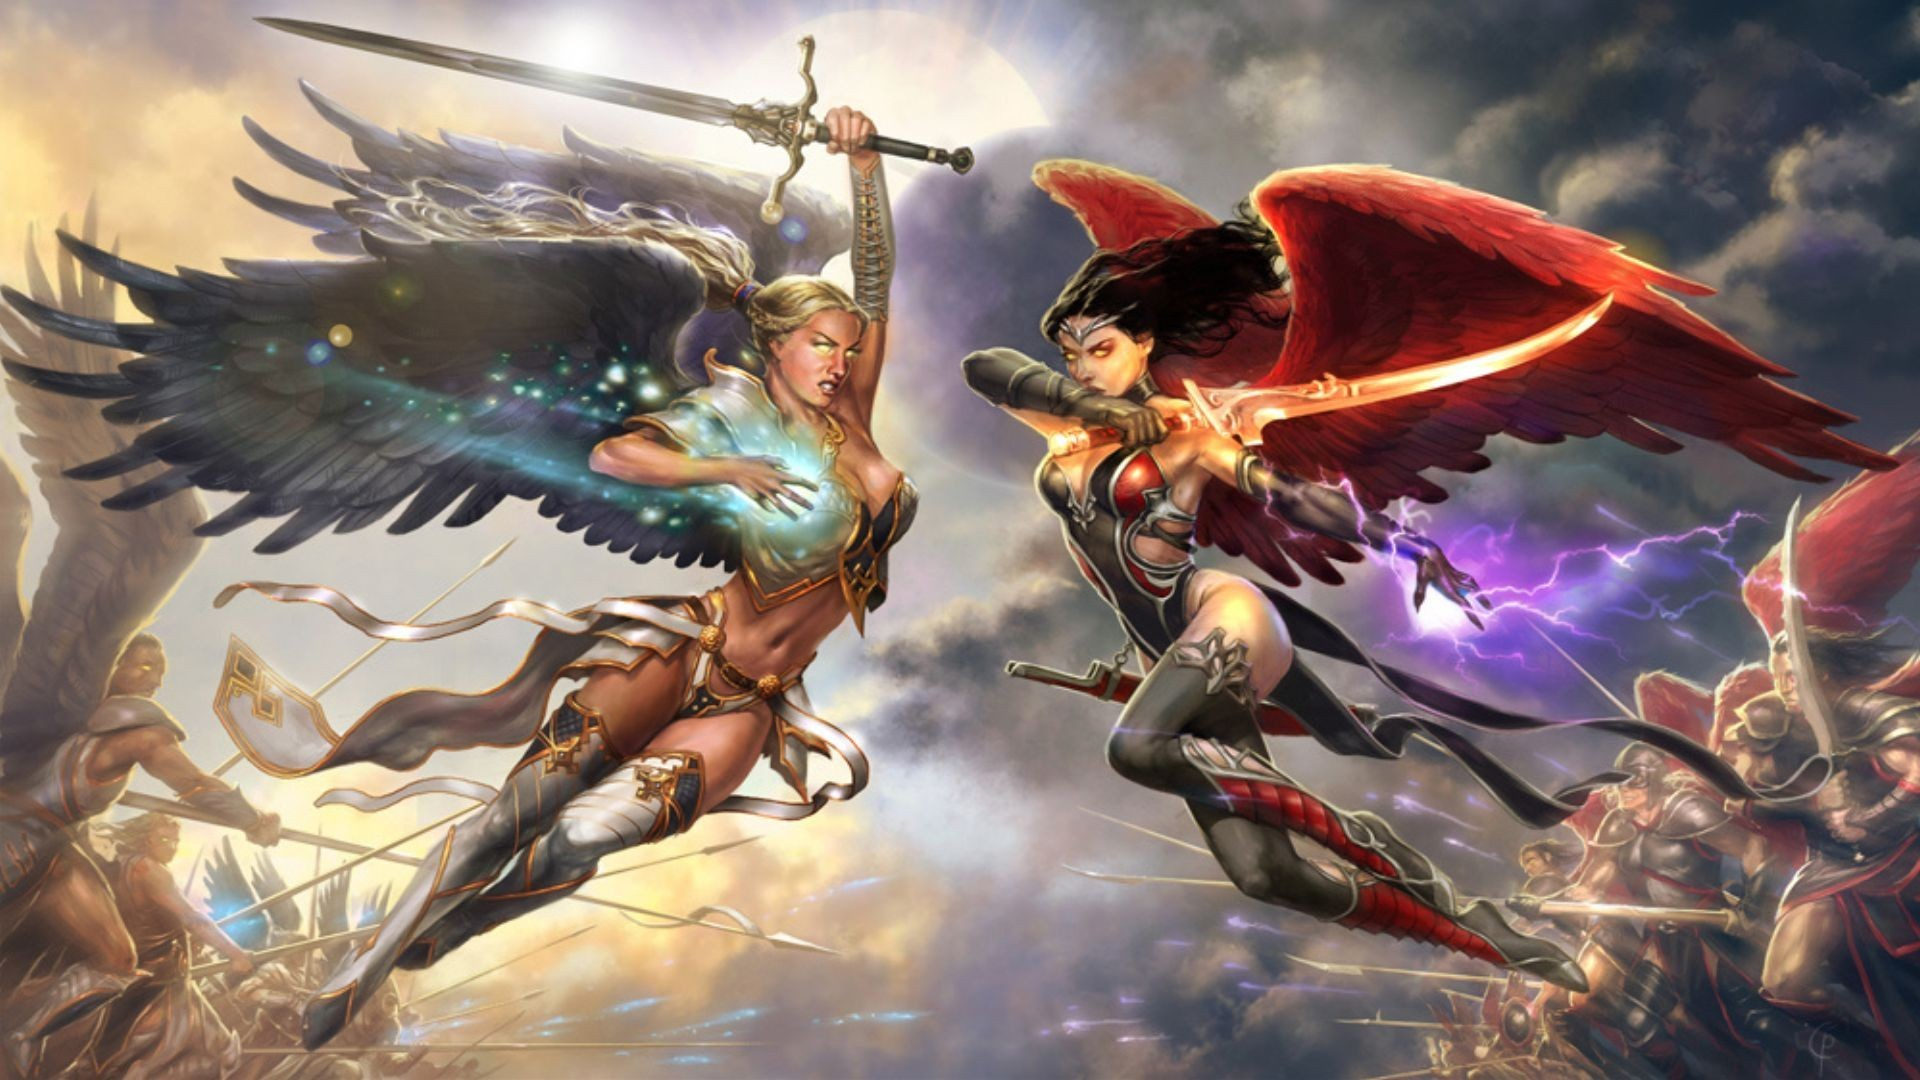 1920x1080 Fantasy - Angel Warrior Fantasy Angel Woman Wings Good vs. Evil Magic Woman  Warrior Sword